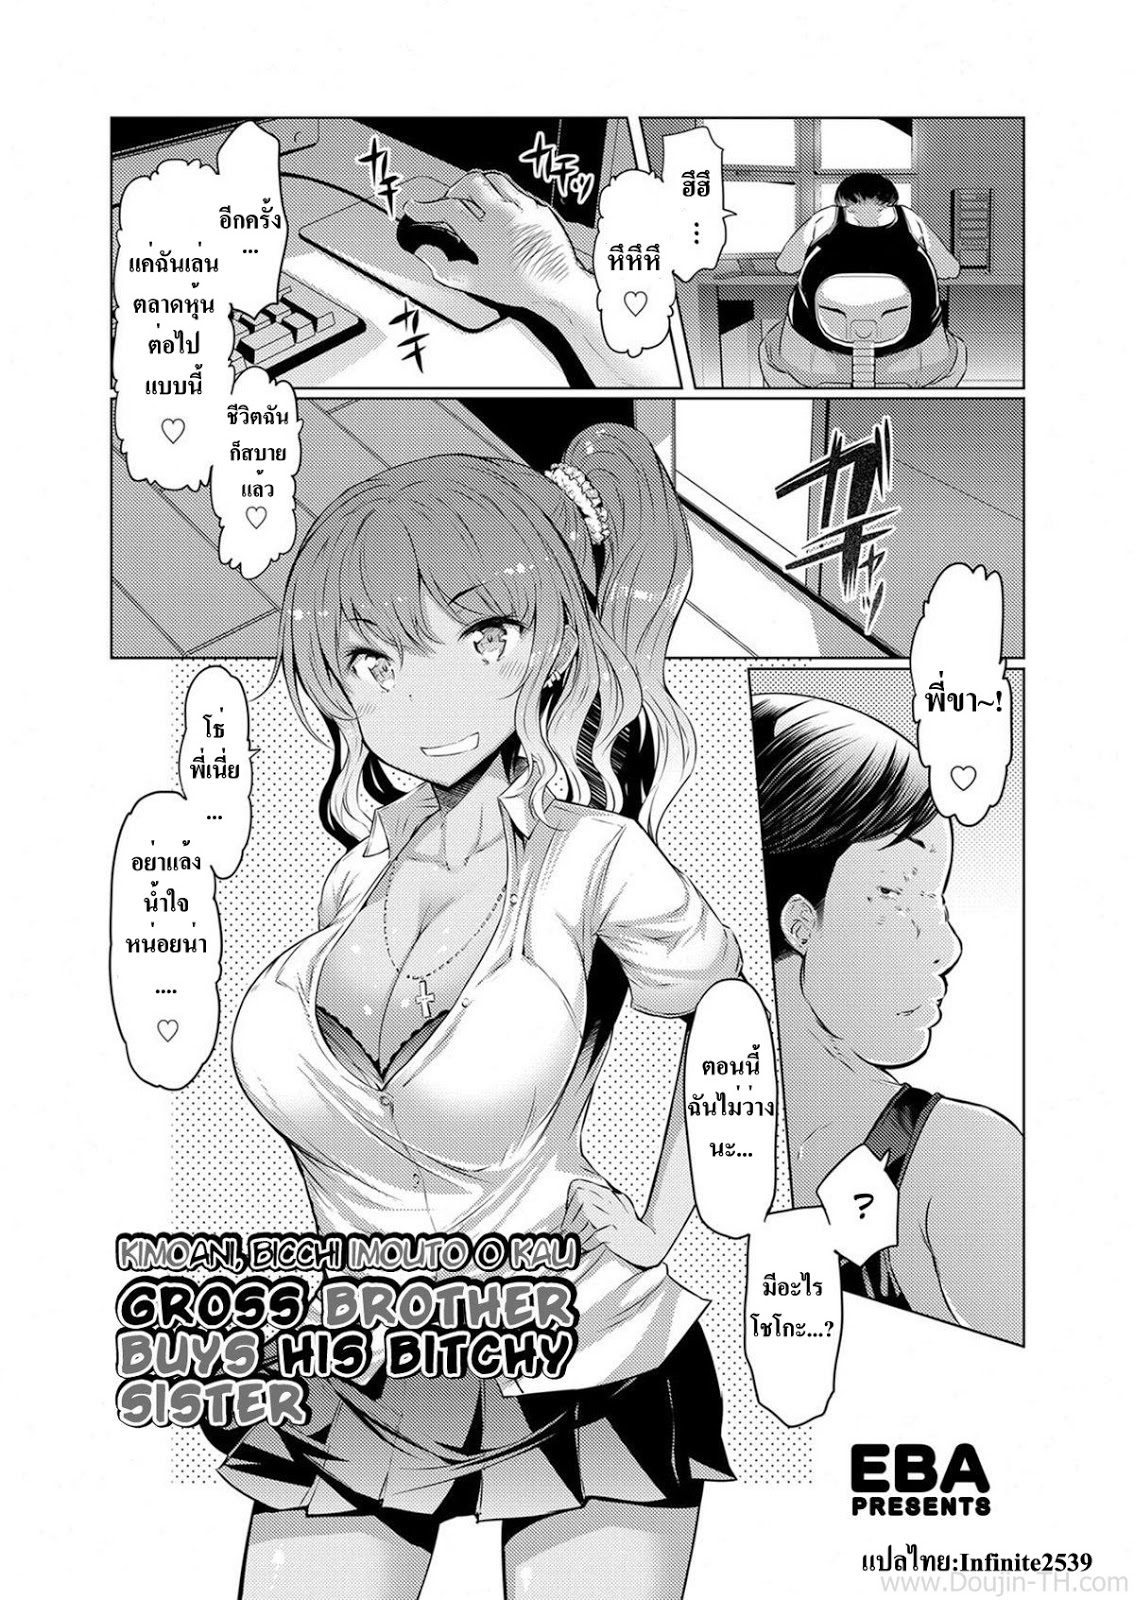 Japanese orgy record